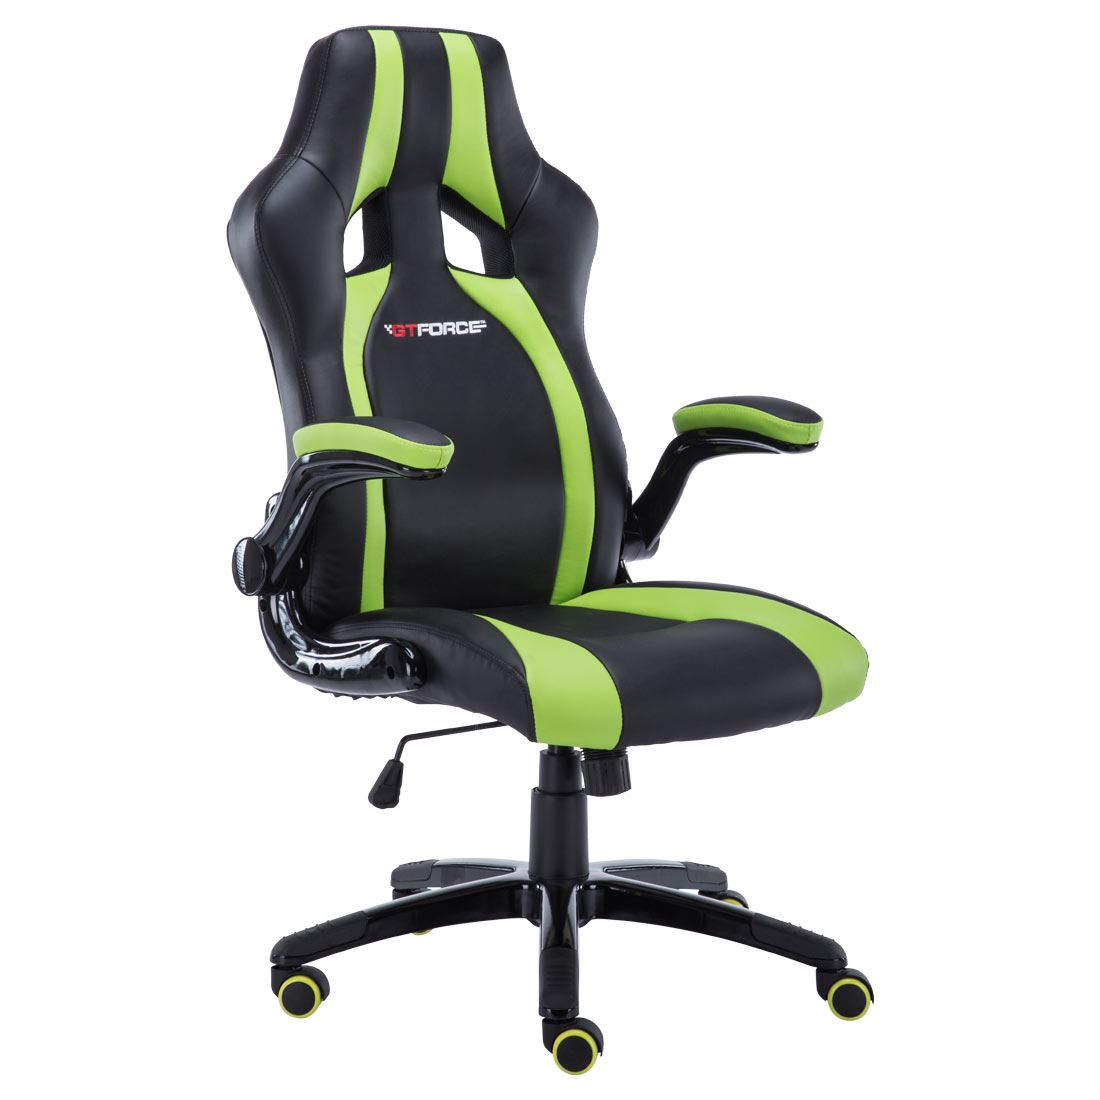 Racing Desk Chair Gtforce Roadster 2 Sport Racing Car Office Chair Leather